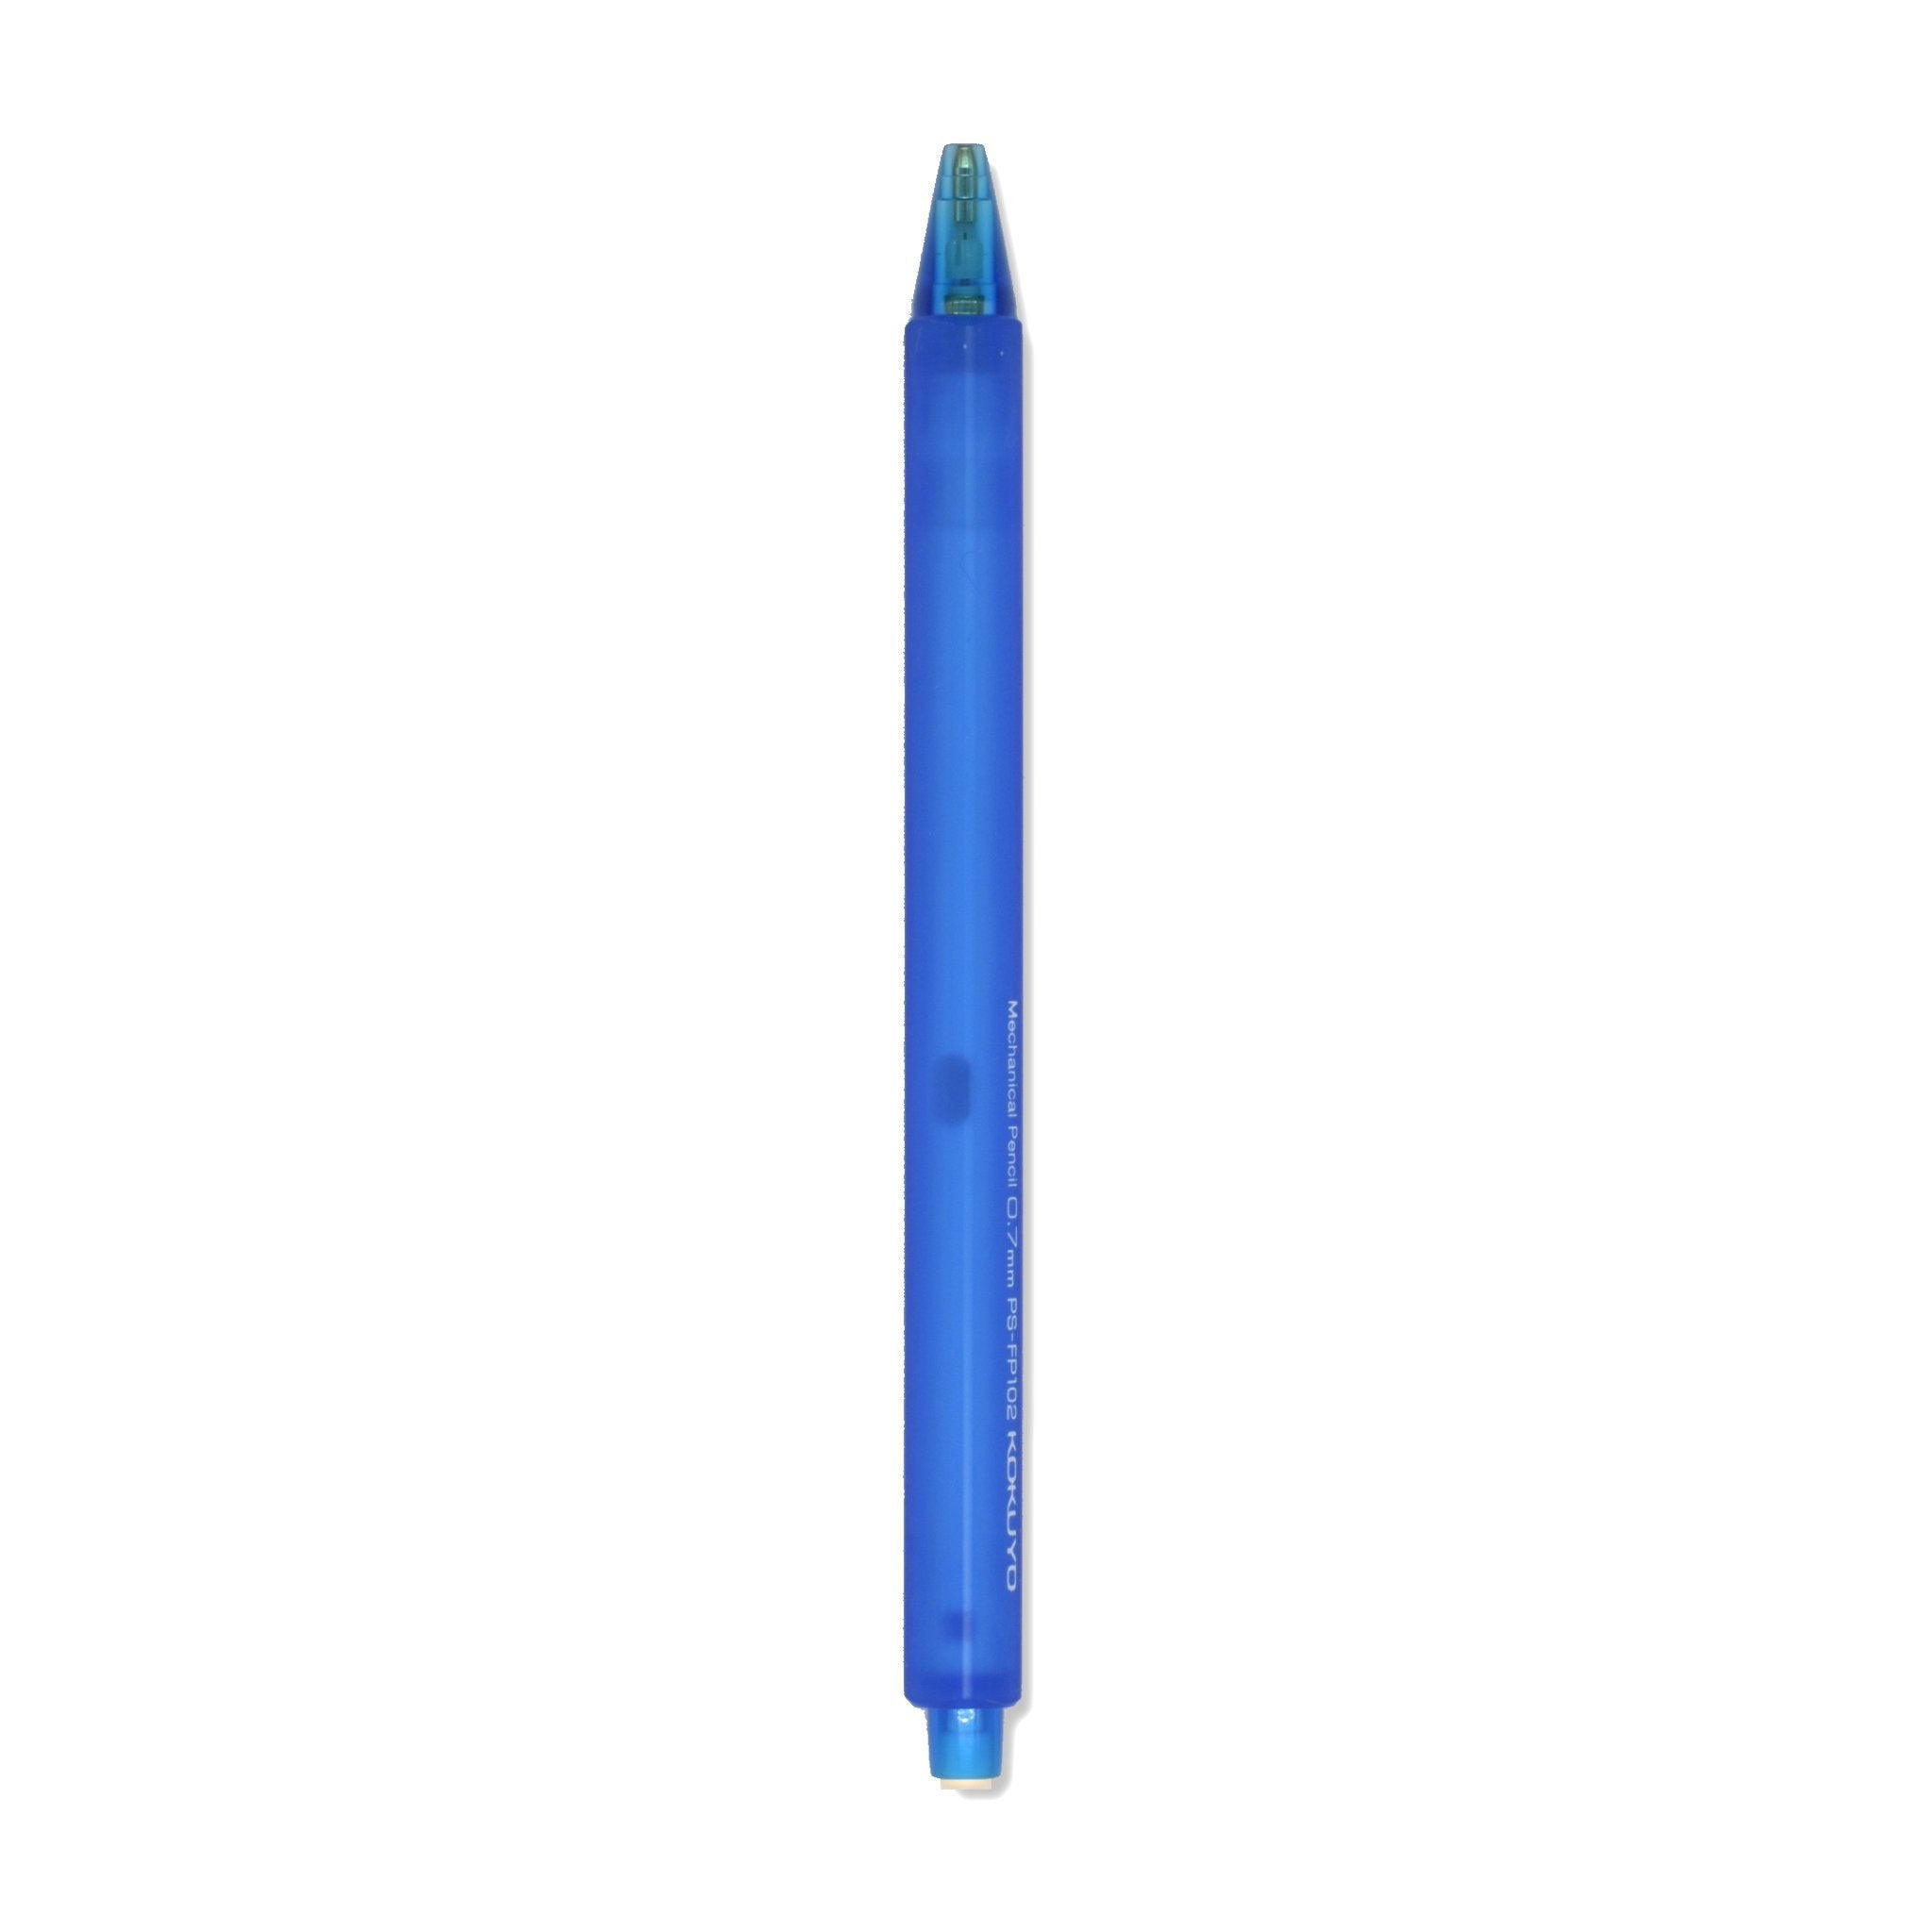 Kokuyo Frozen Mechanical Pencil 0.7mm - Blue - Notegeist dot com